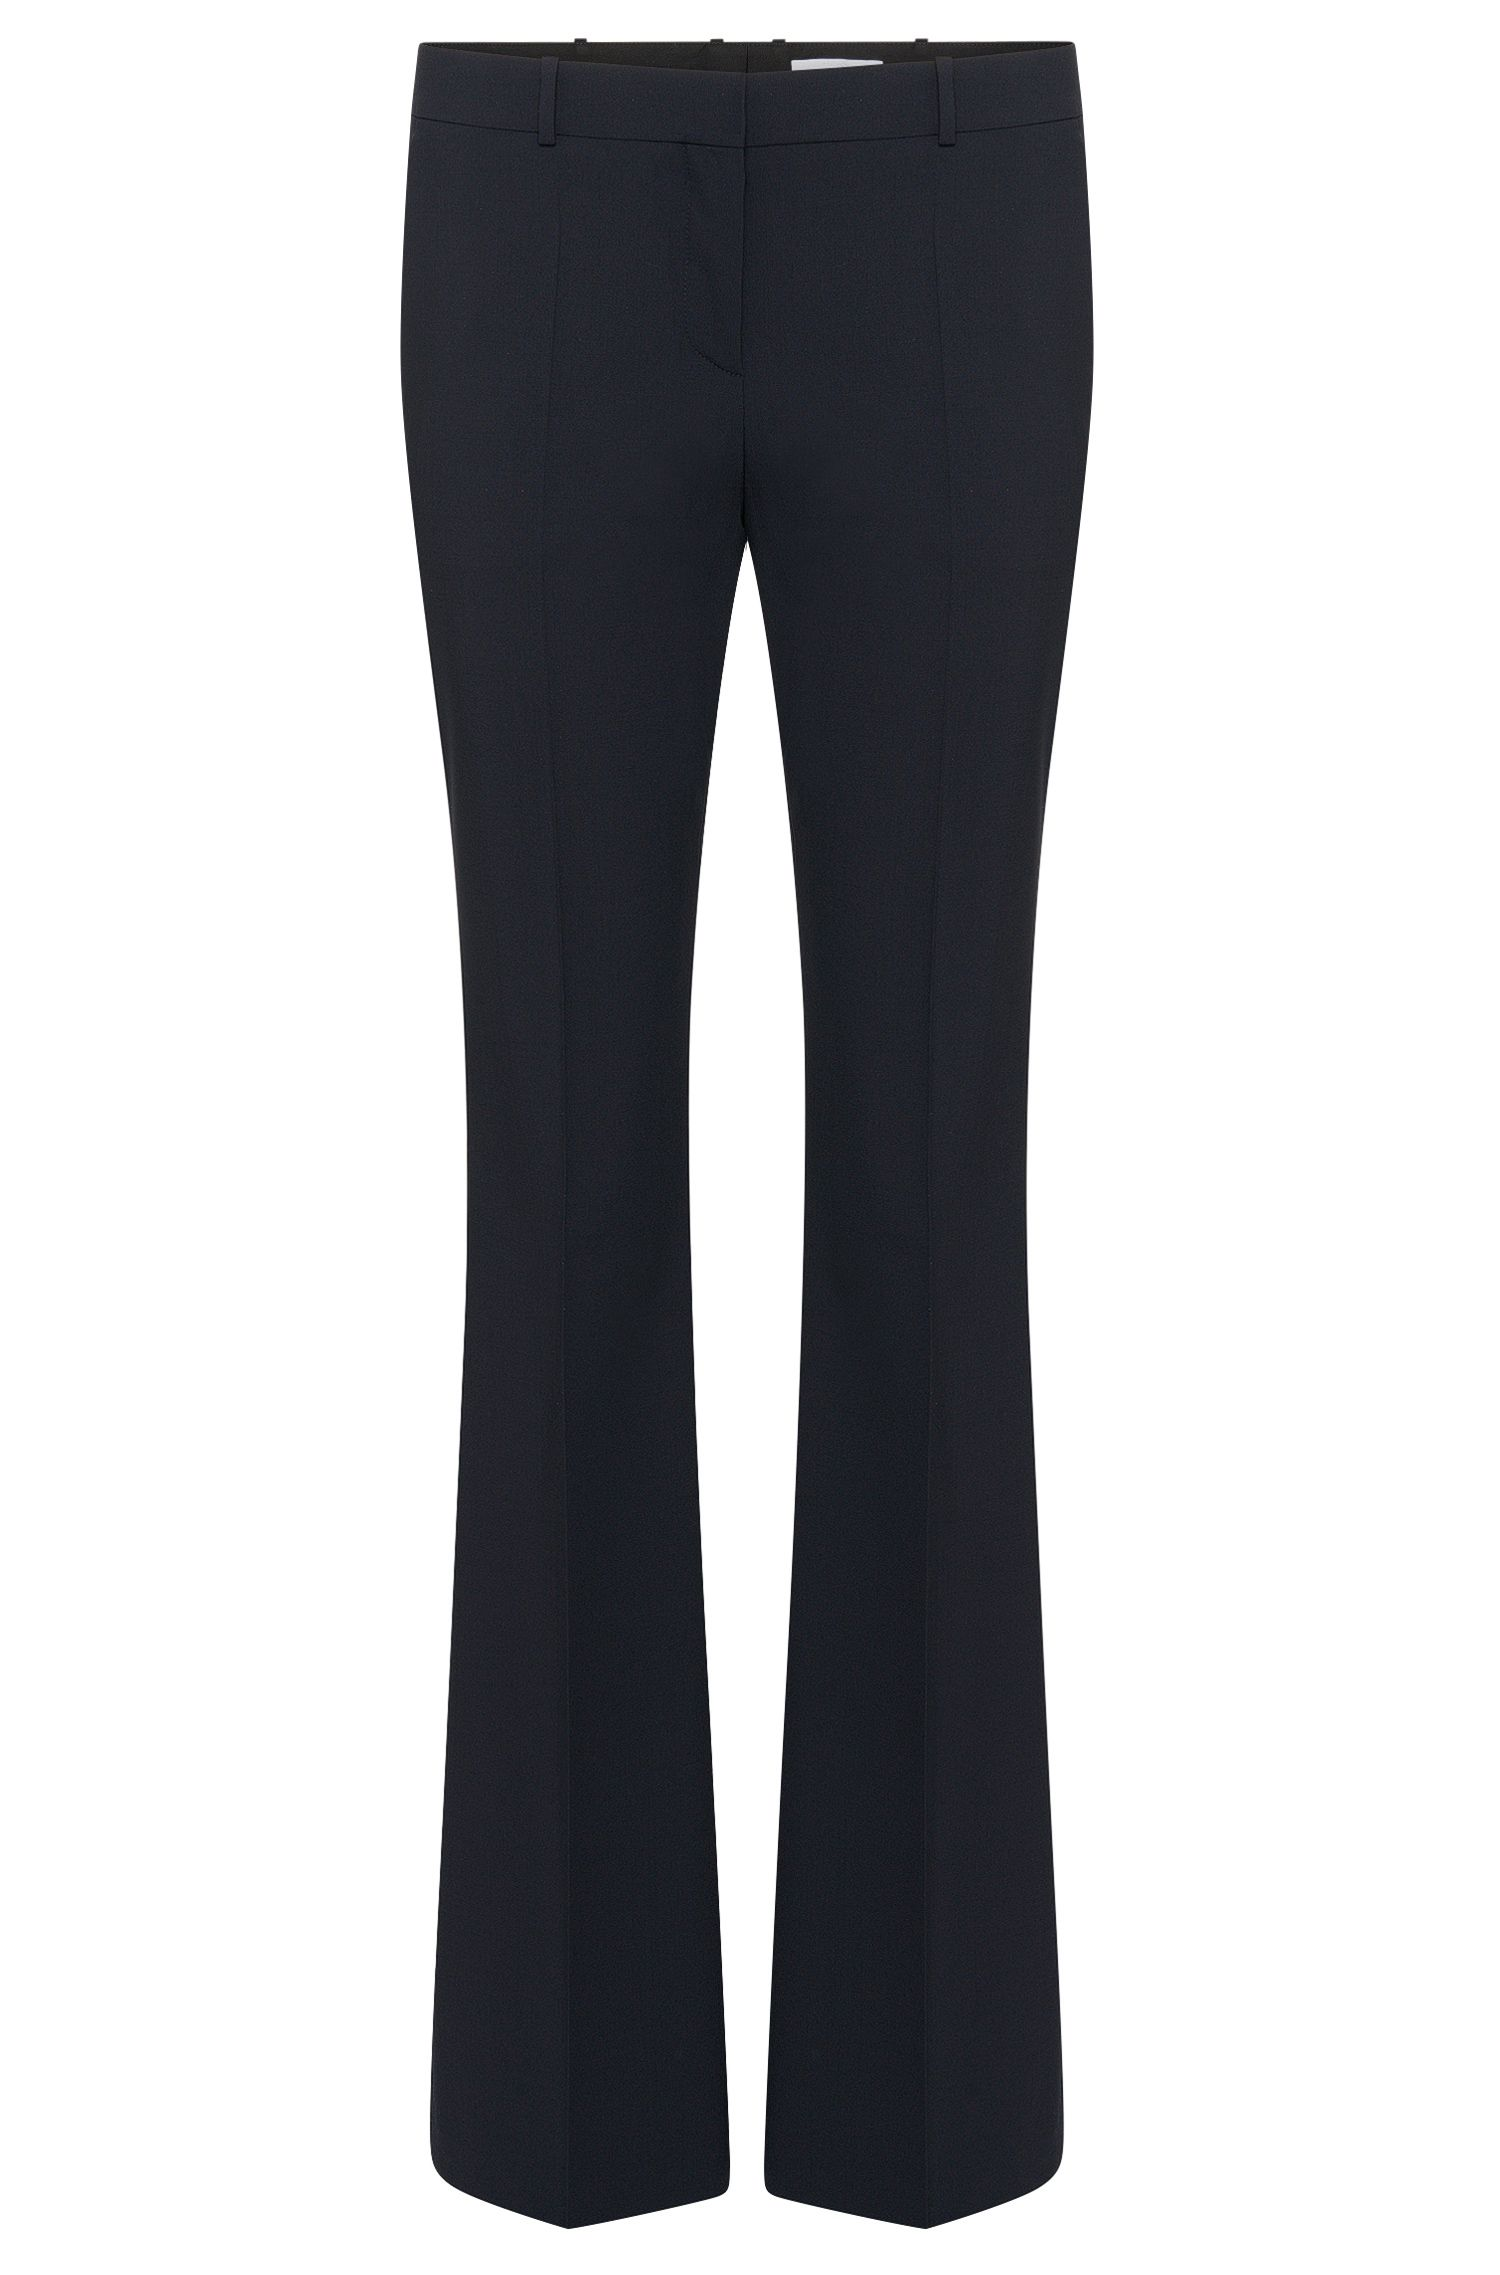 'Tulea Front Zip' | Stretch Virgin Wool Boot Cut Dress Pants